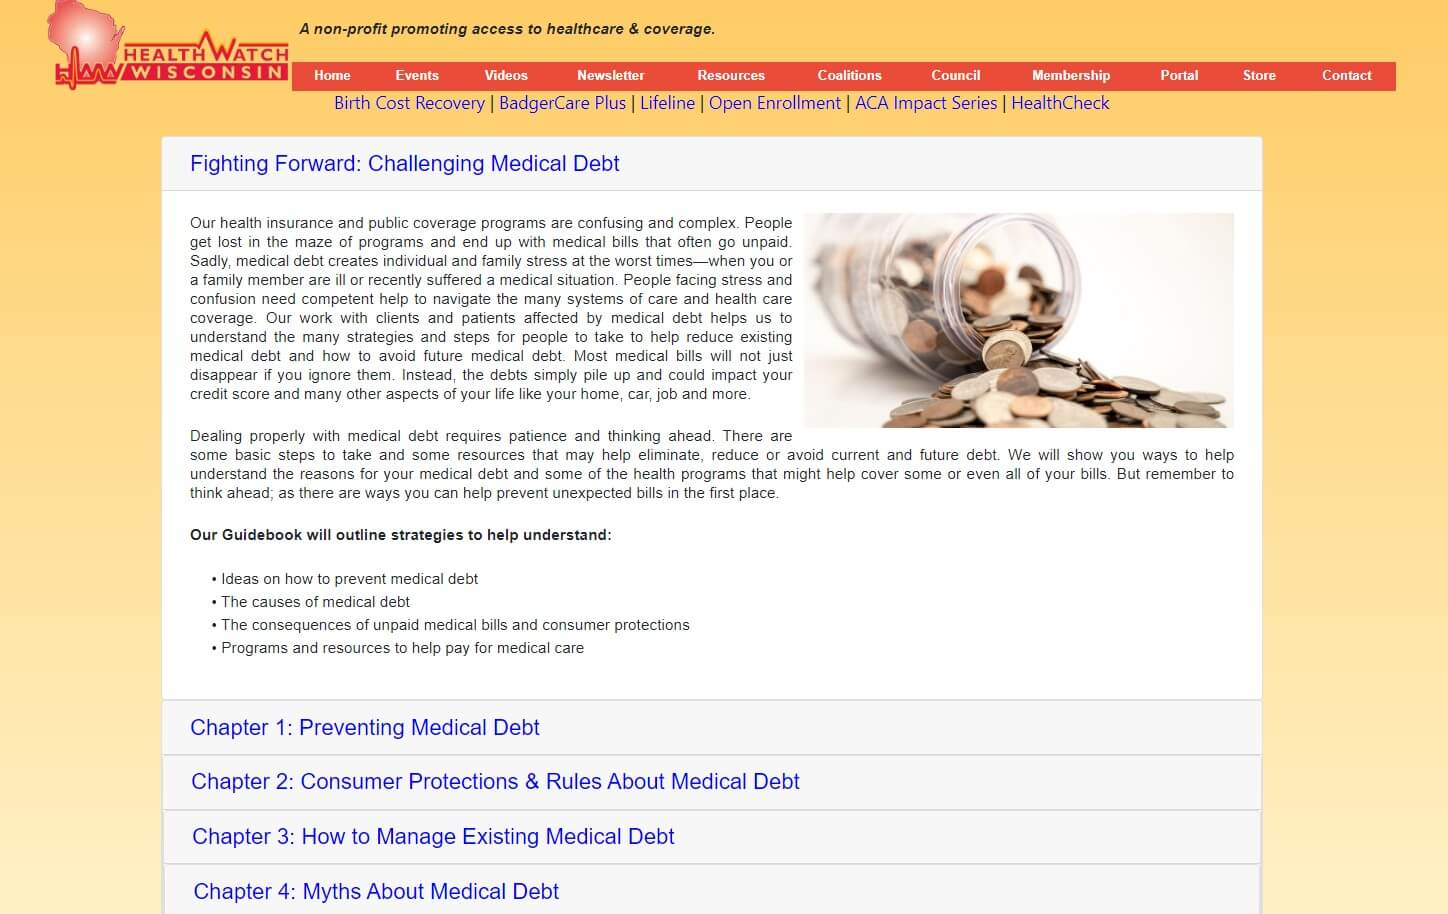 How to Deal With Medical Debt